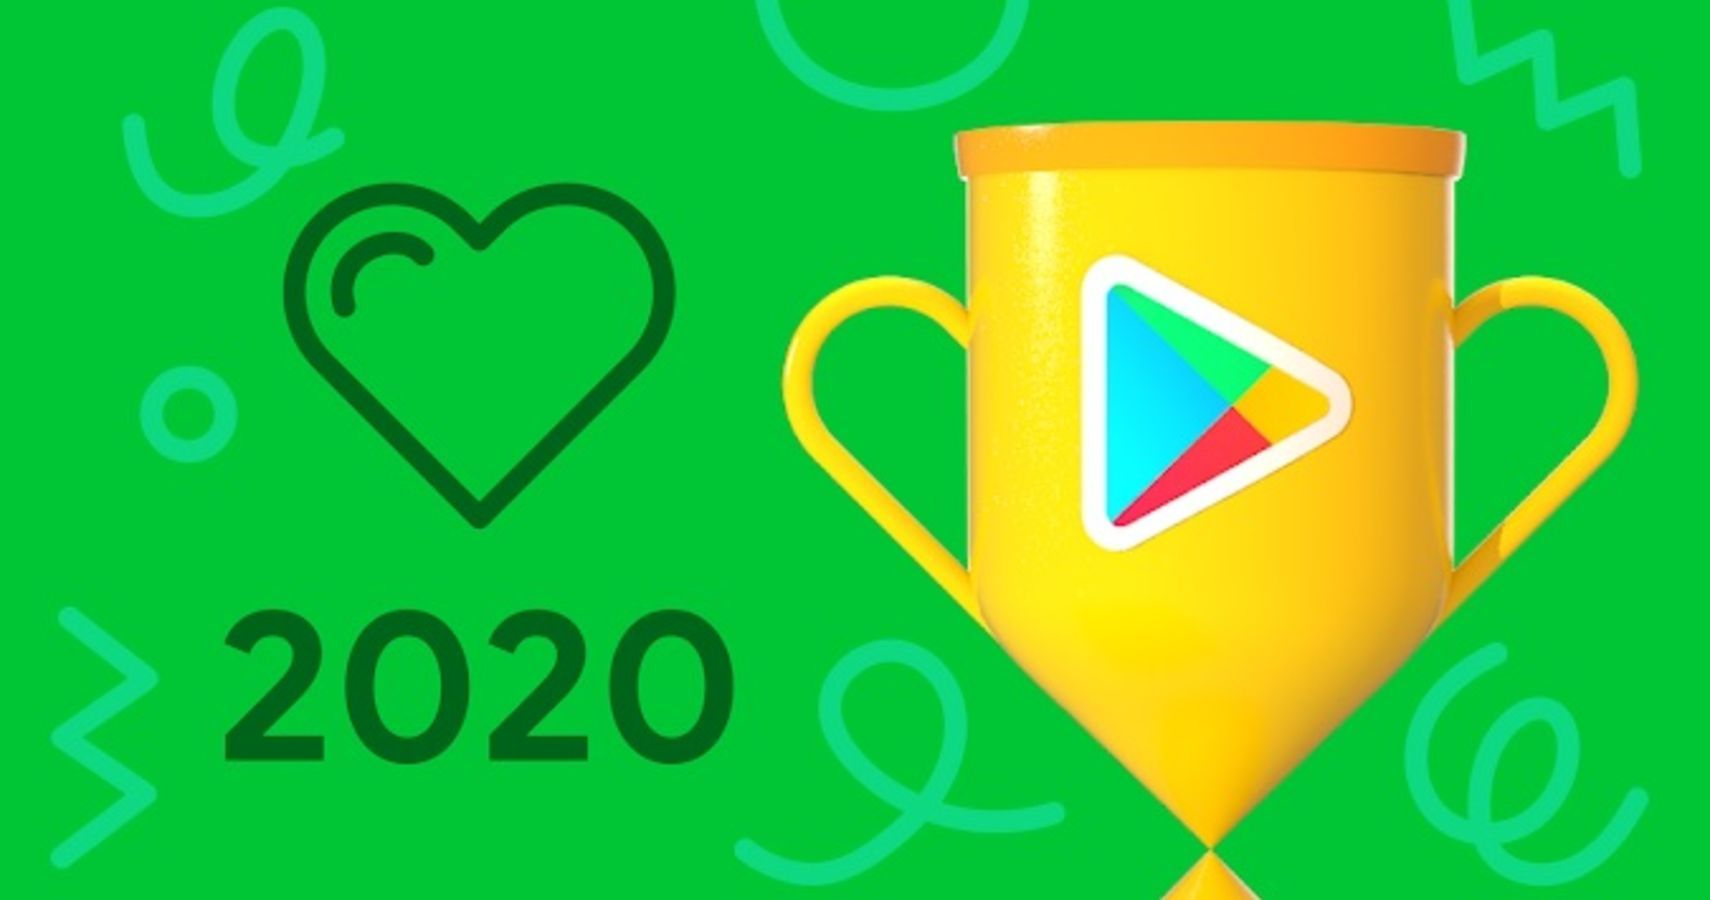 Google Play's Best Of 2020 Voting Is Now Open, Nominees Include Genshin Impact and Legends Of Runeterra